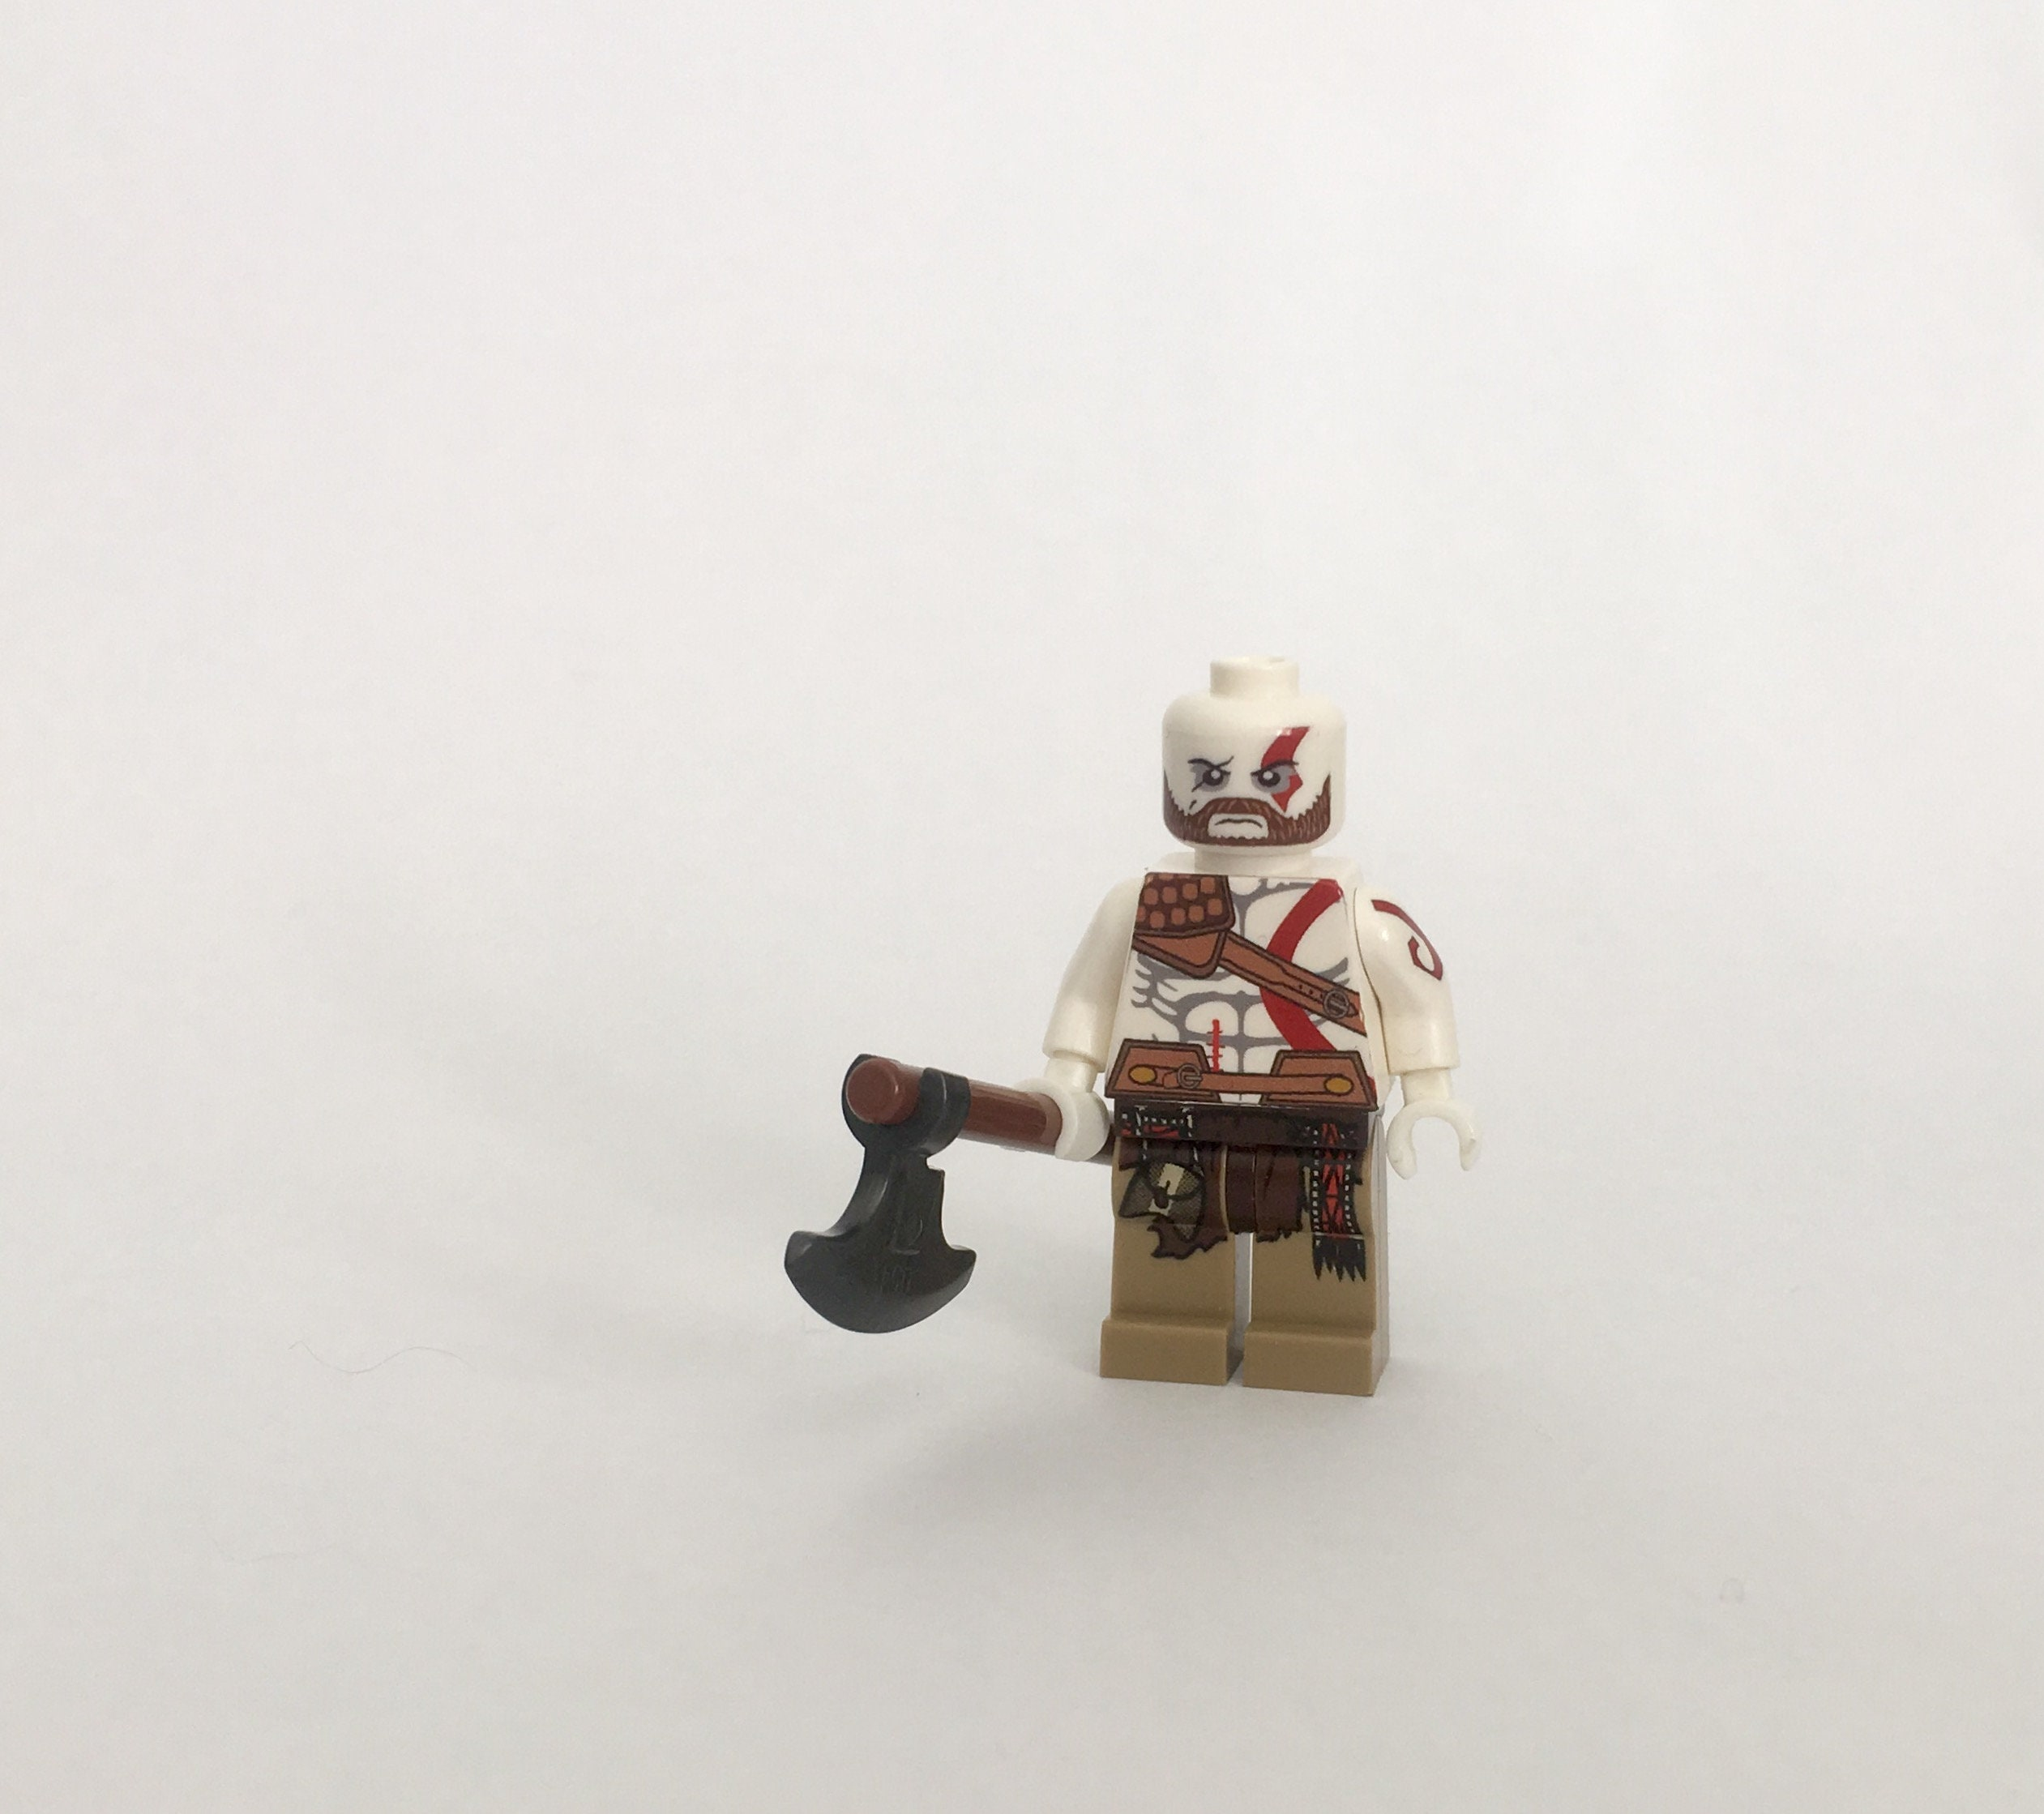 Kratos from God of War Custom Minifigure made from Lego Parts | Etsy